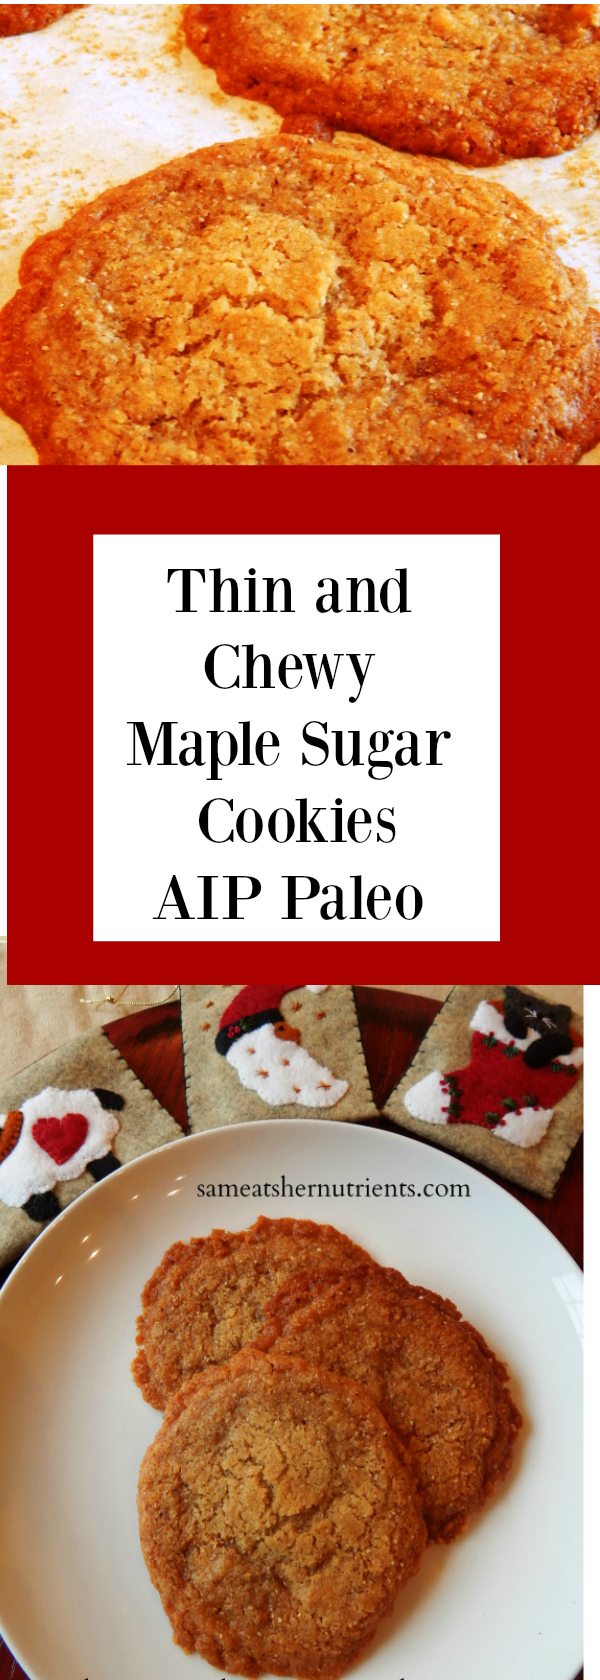 Thin and Chewy AIP Paleo Maple Sugar Cookies! Delicious!!!